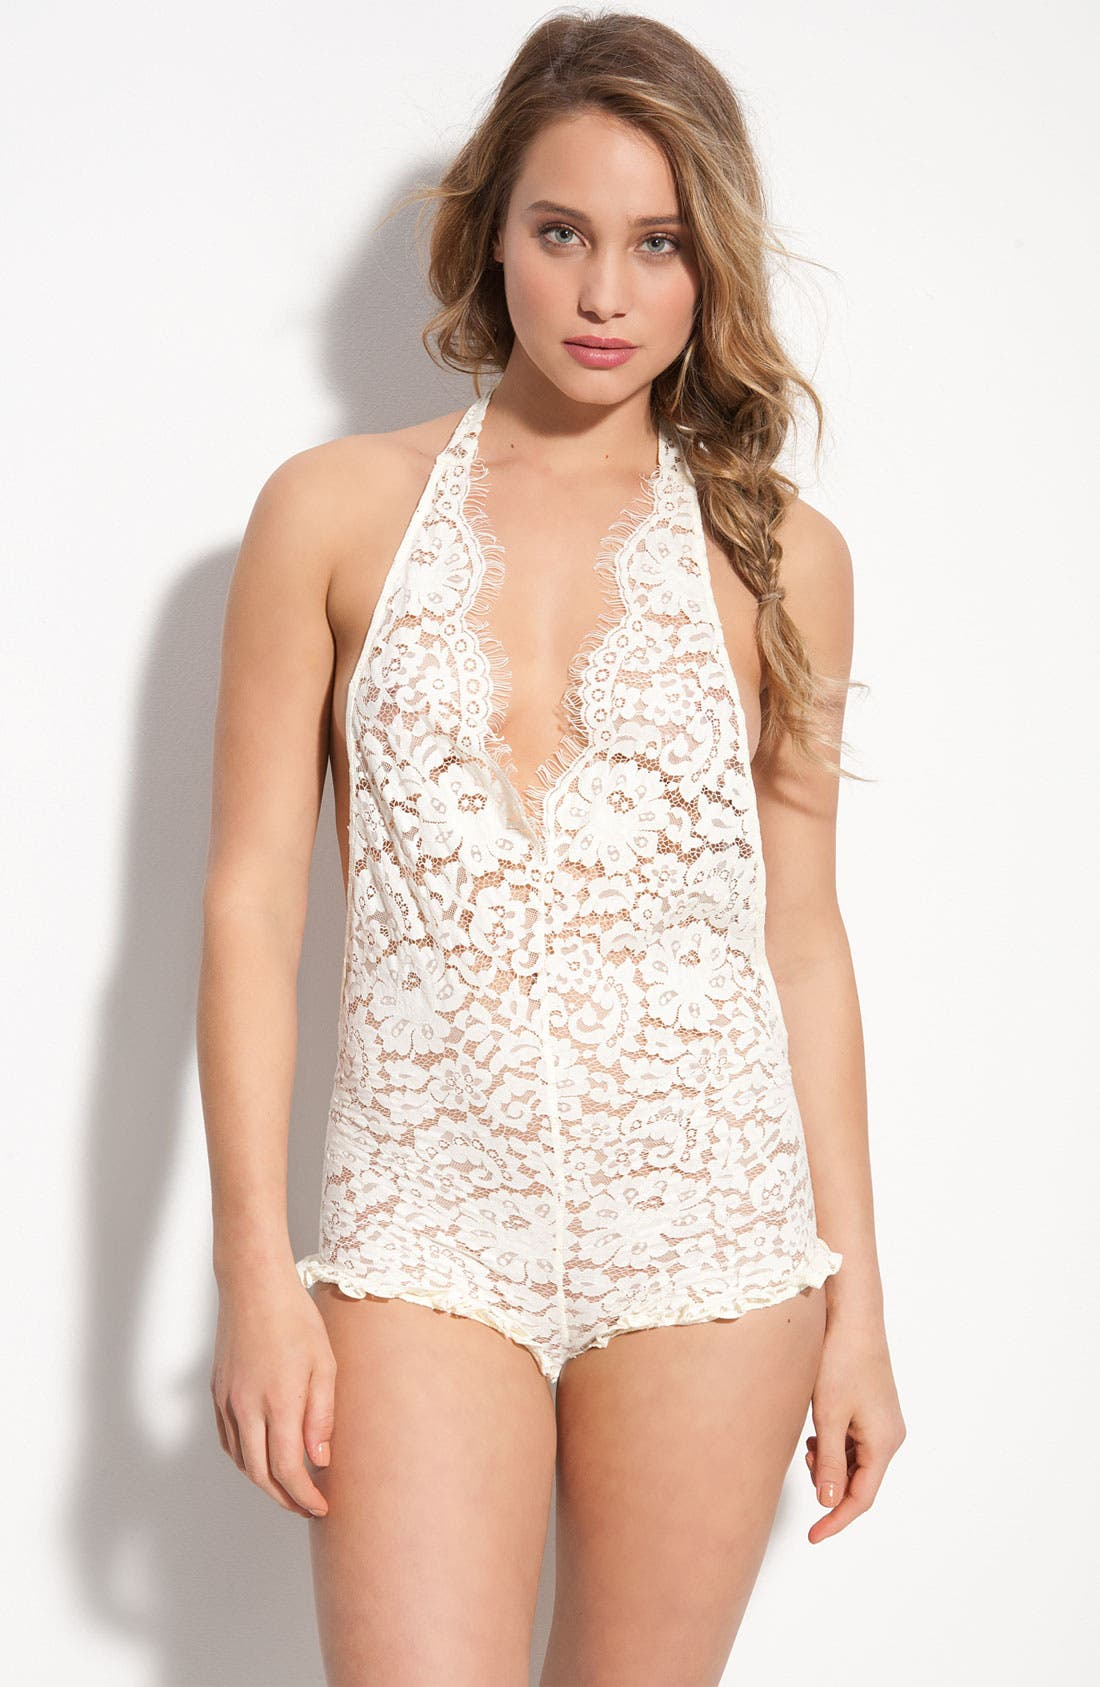 'All Things Nice' Lace Teddy,                         Main,                         color, Sugar